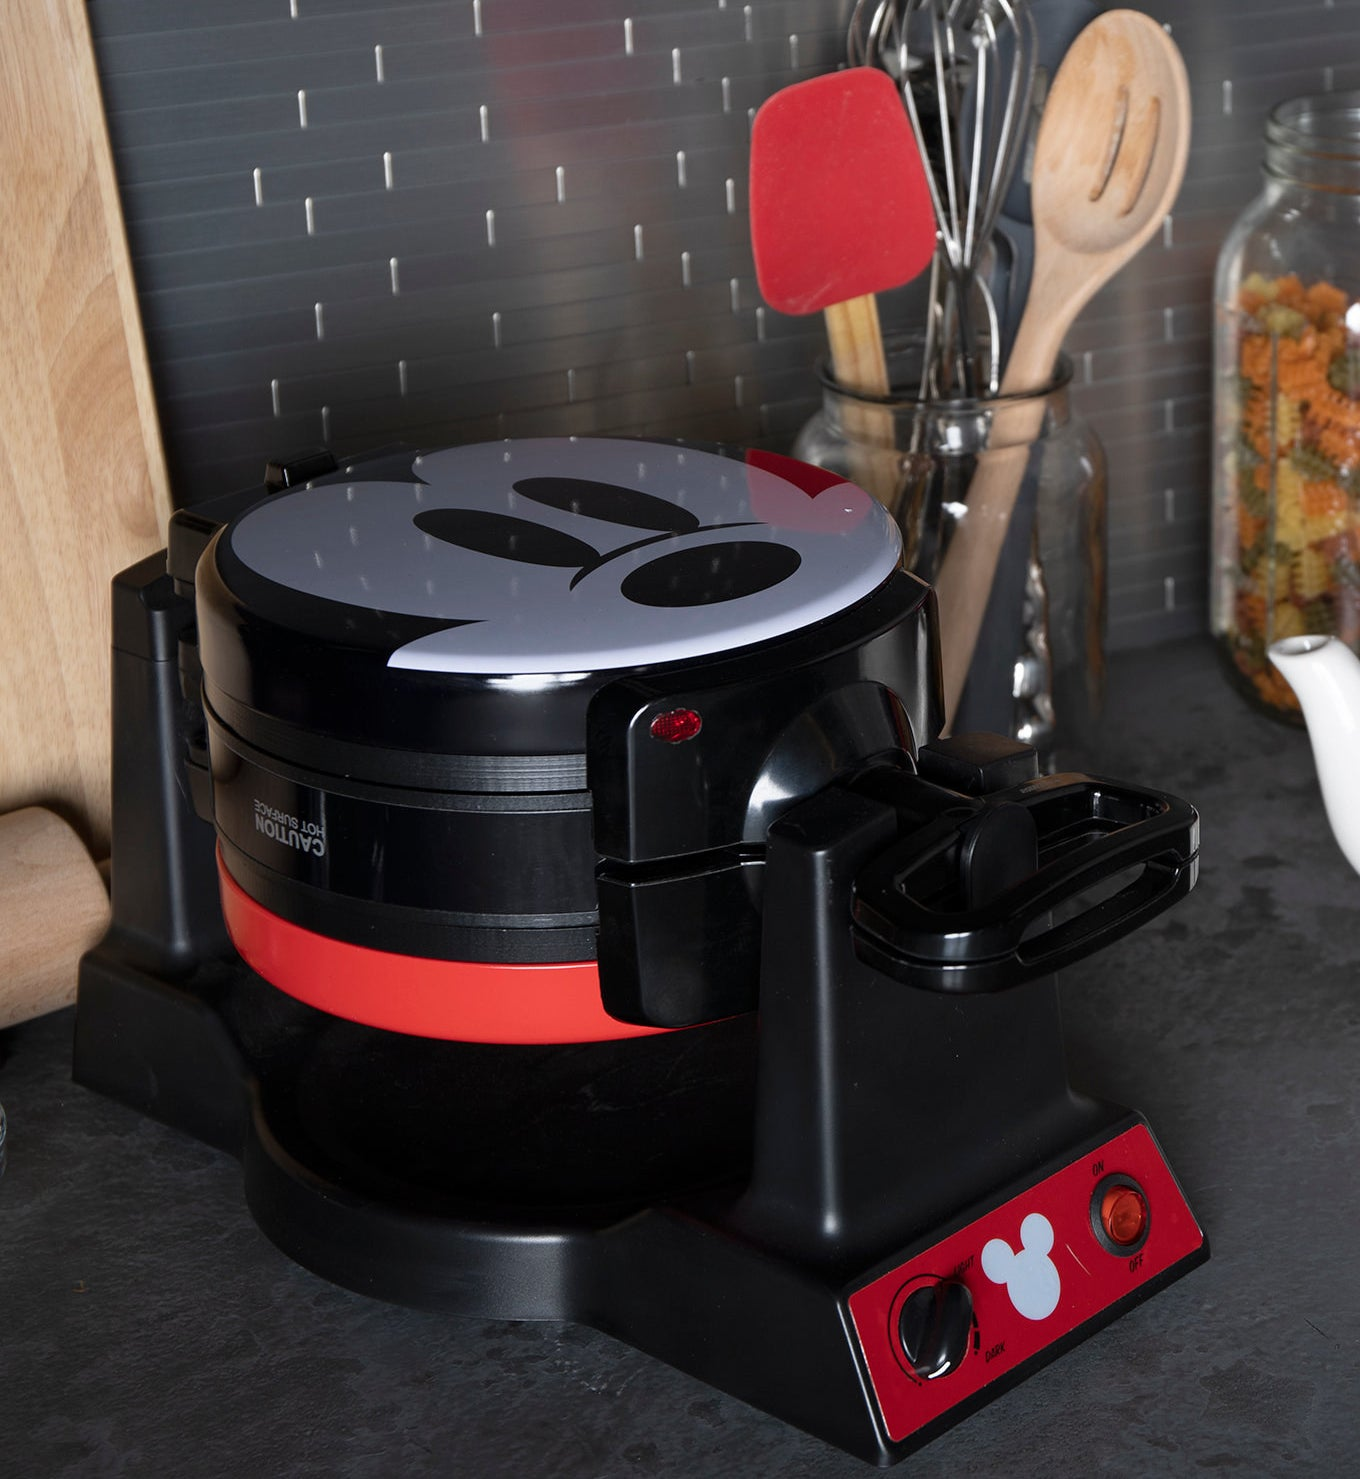 the Mickey Mouse waffle maker